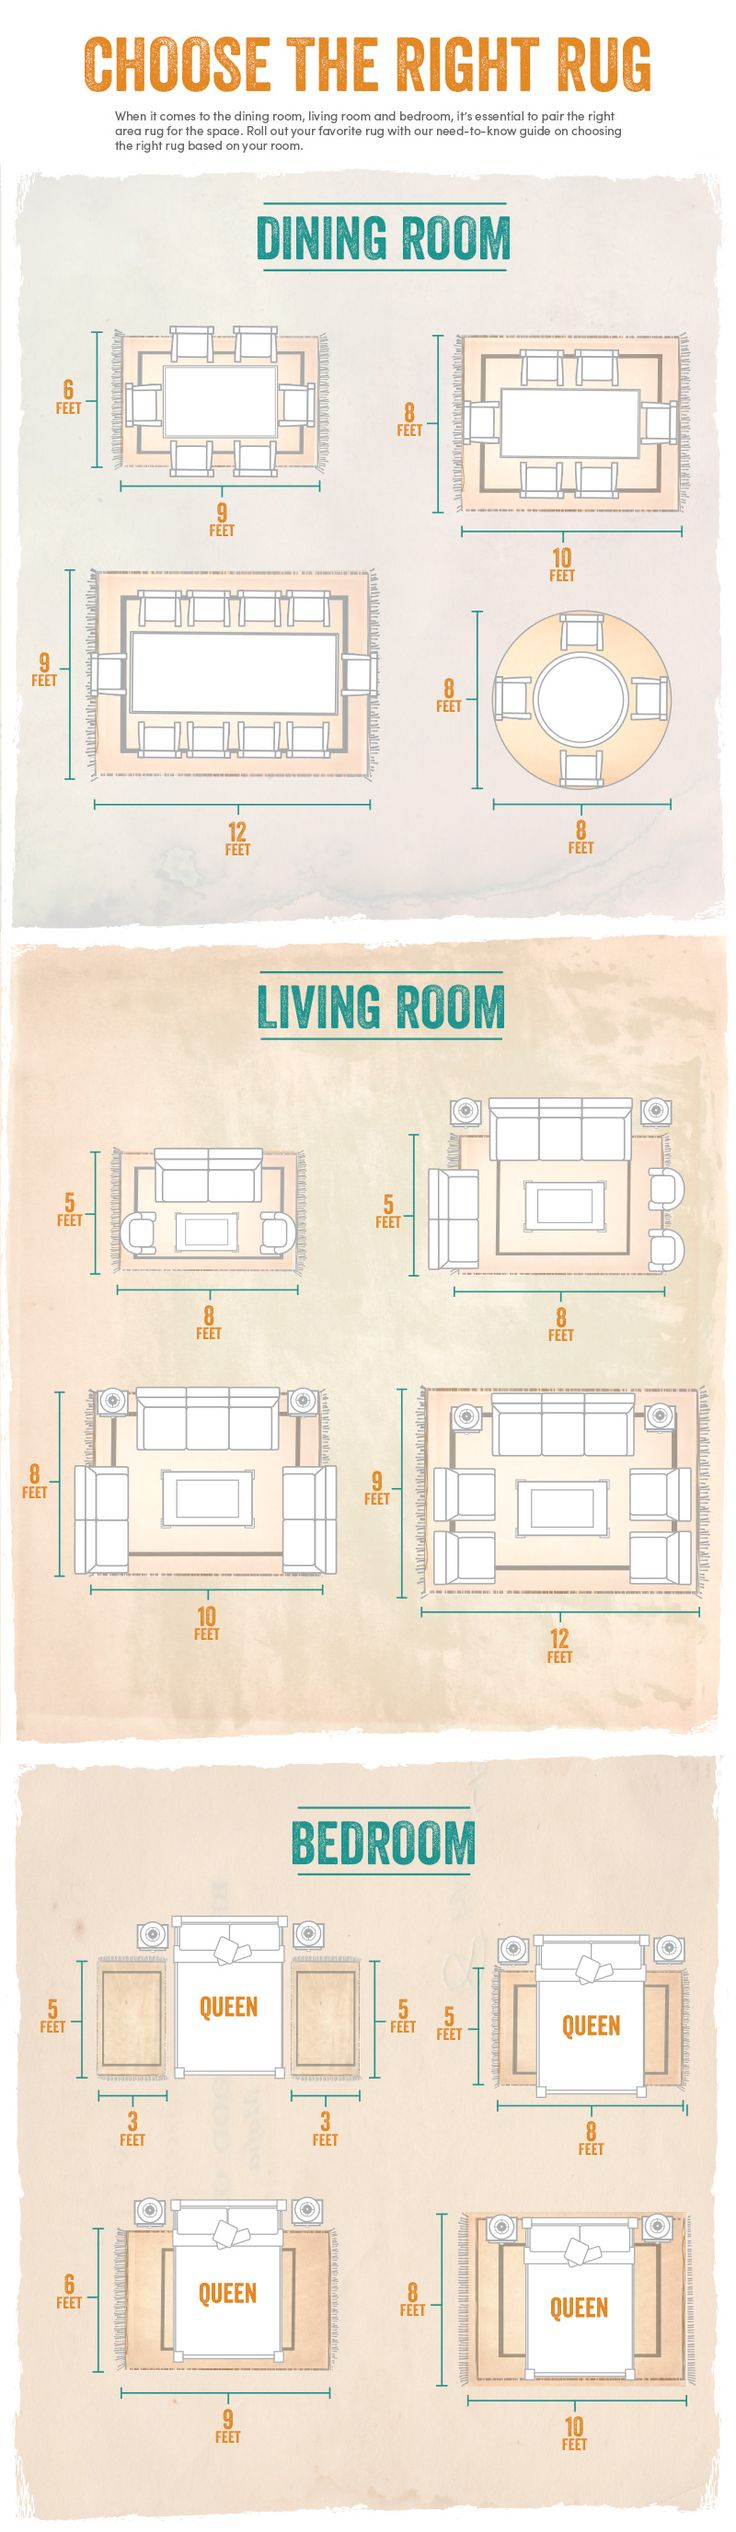 living room furniture plan. best 25 room layouts ideas on pinterest furniture layout rug placement and size guide living plan p